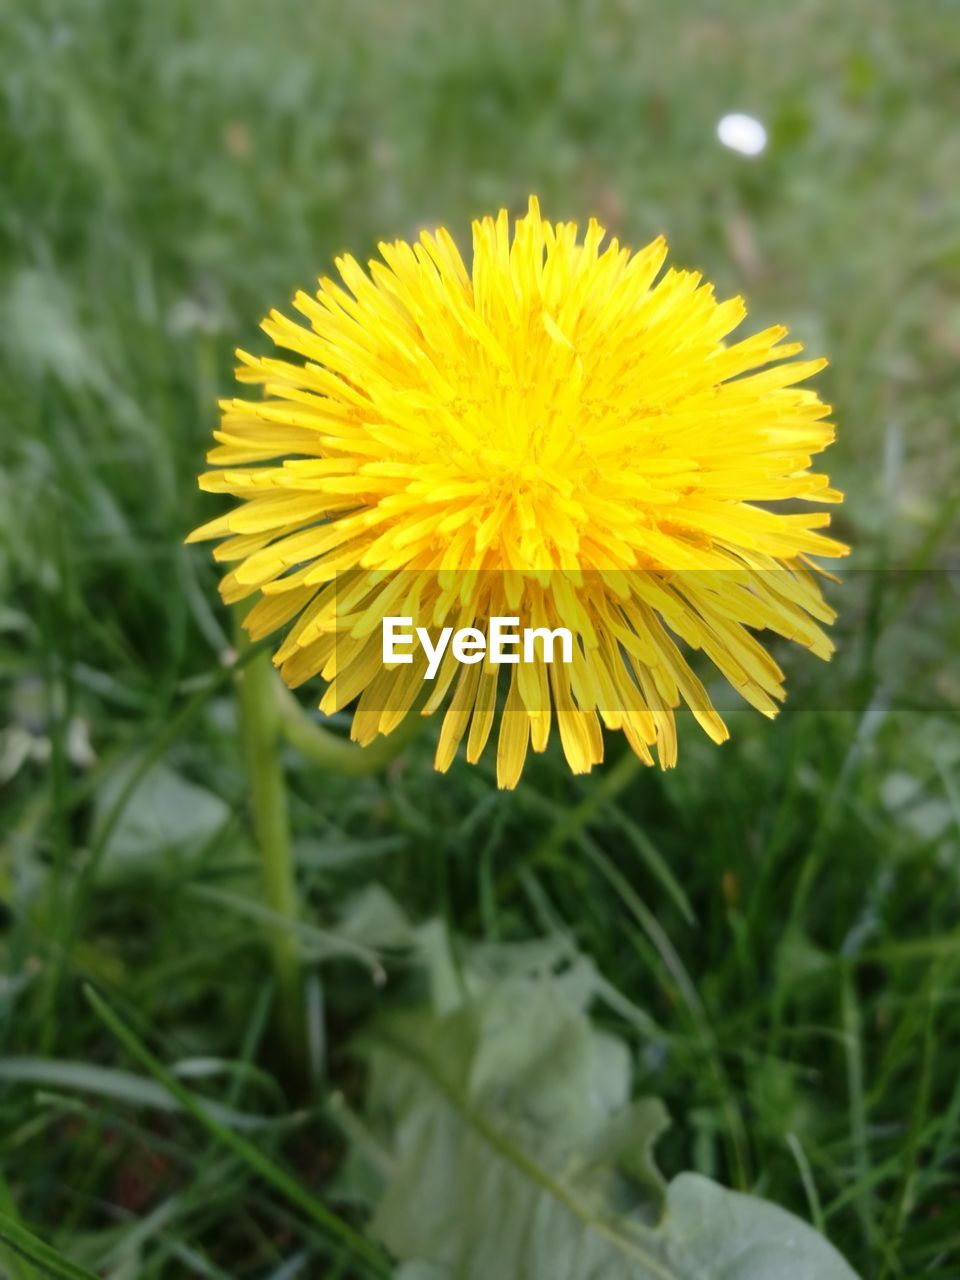 flower, yellow, flowering plant, plant, beauty in nature, vulnerability, fragility, flower head, growth, freshness, petal, inflorescence, close-up, focus on foreground, nature, field, day, no people, land, outdoors, sepal